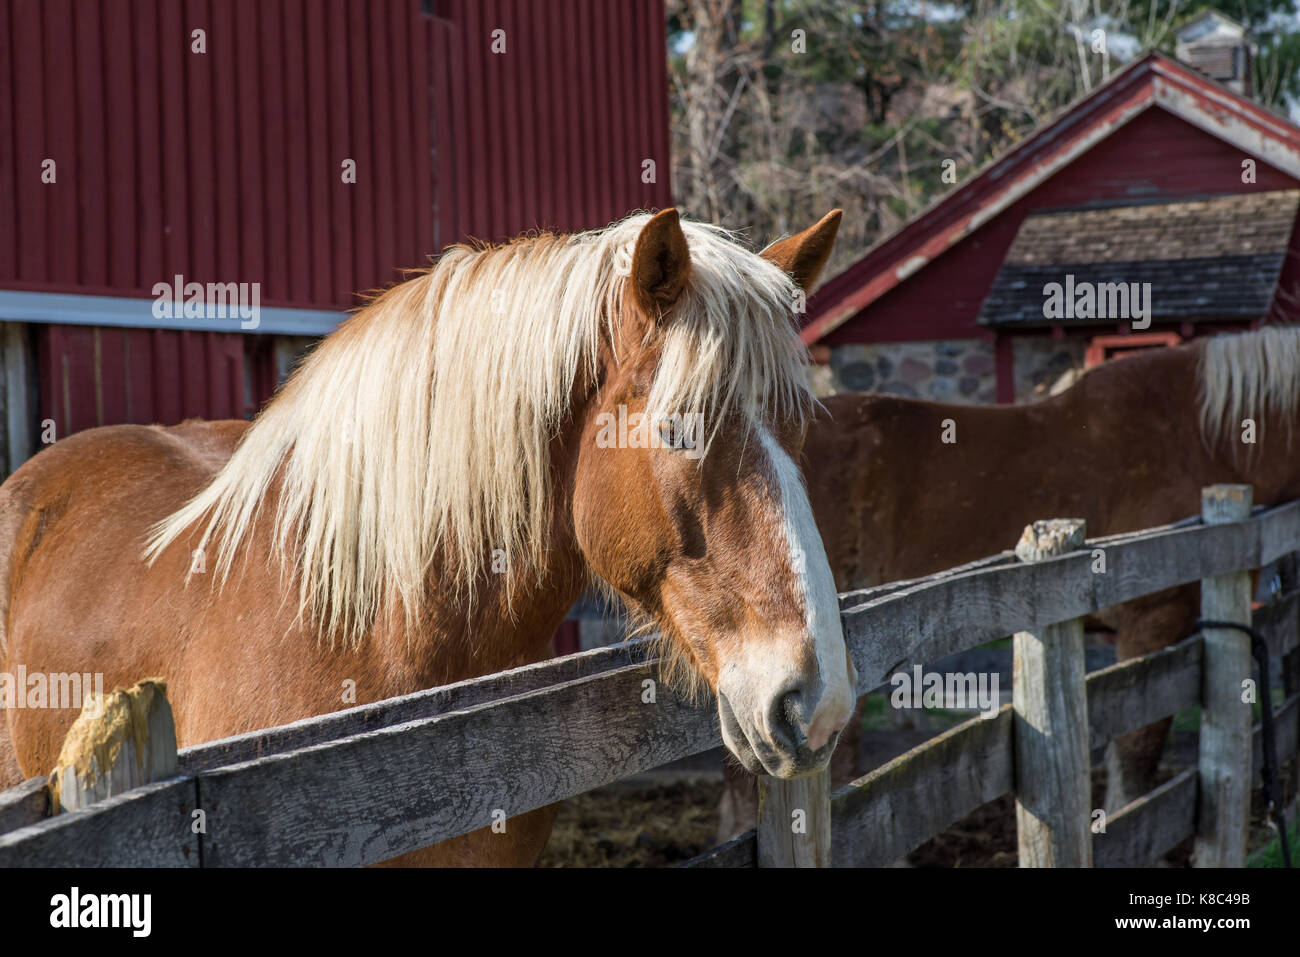 Portrait of a brown horse - Stock Image